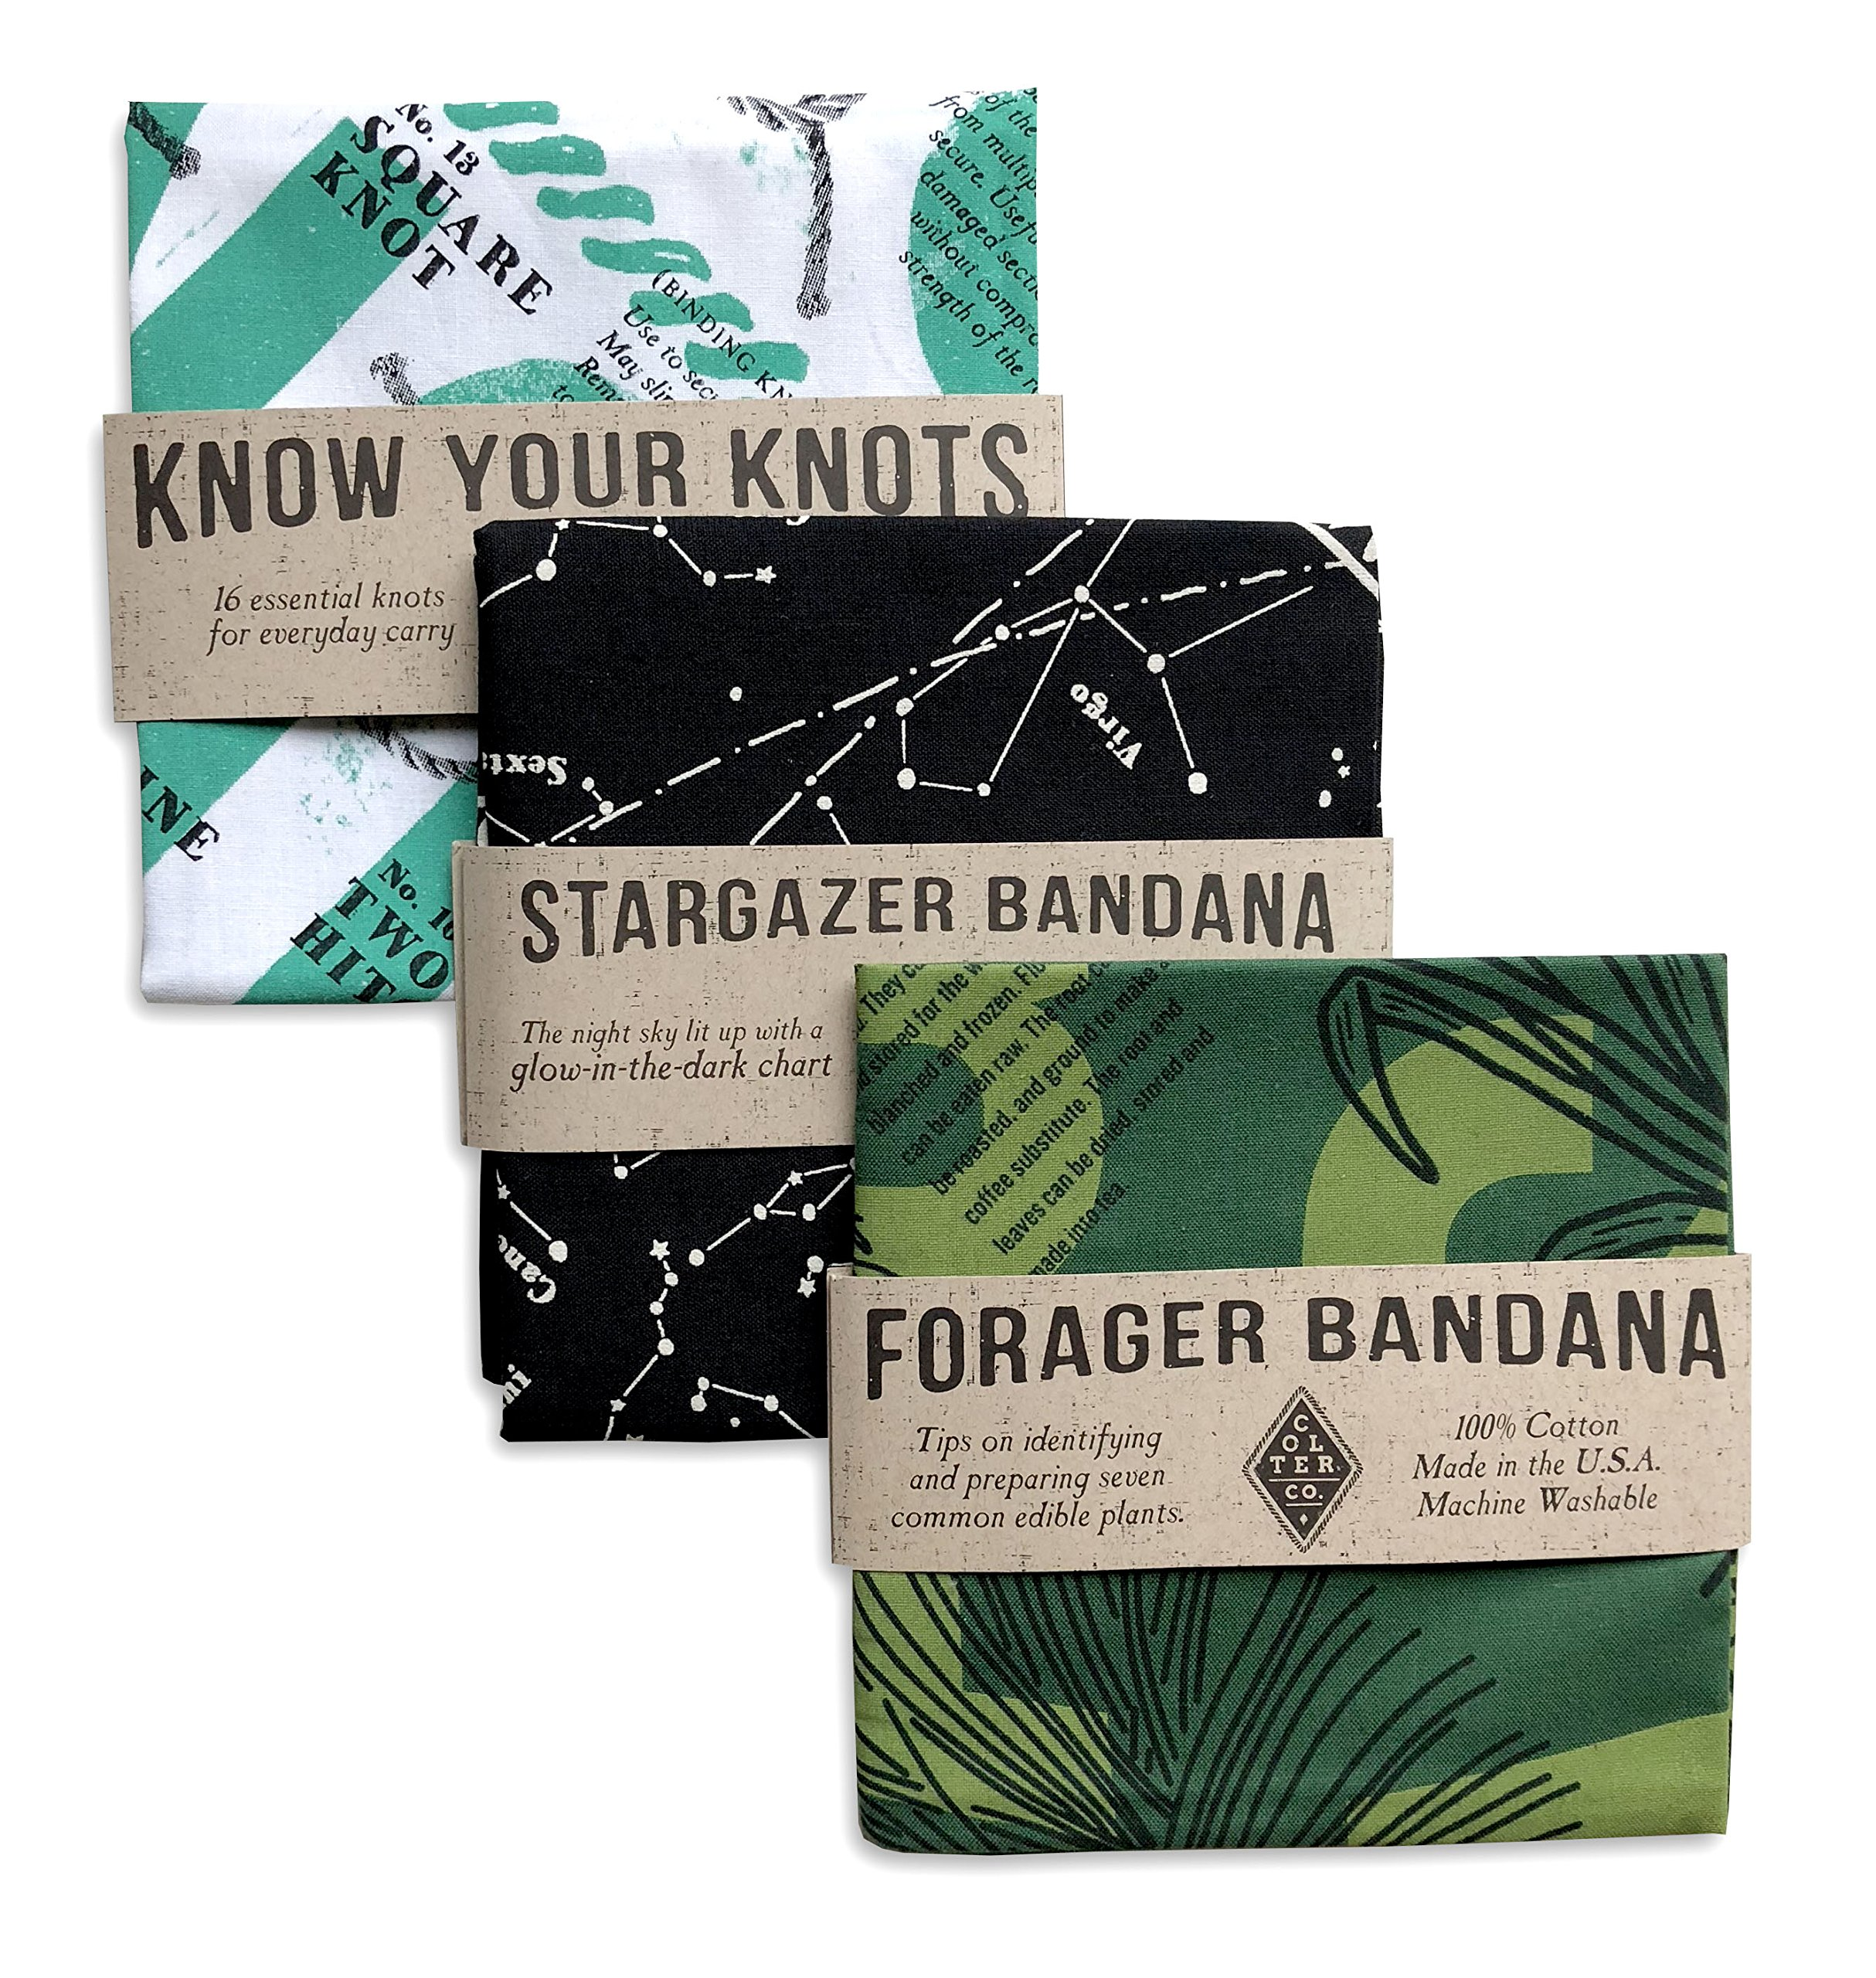 Survival Bandana 3 pack for Camping, Hiking, Fishing | 100% Cotton, Knot Tying Guide, Glow in the Dark Star Chart, Edible Plants Guide Prints, Made in the USA